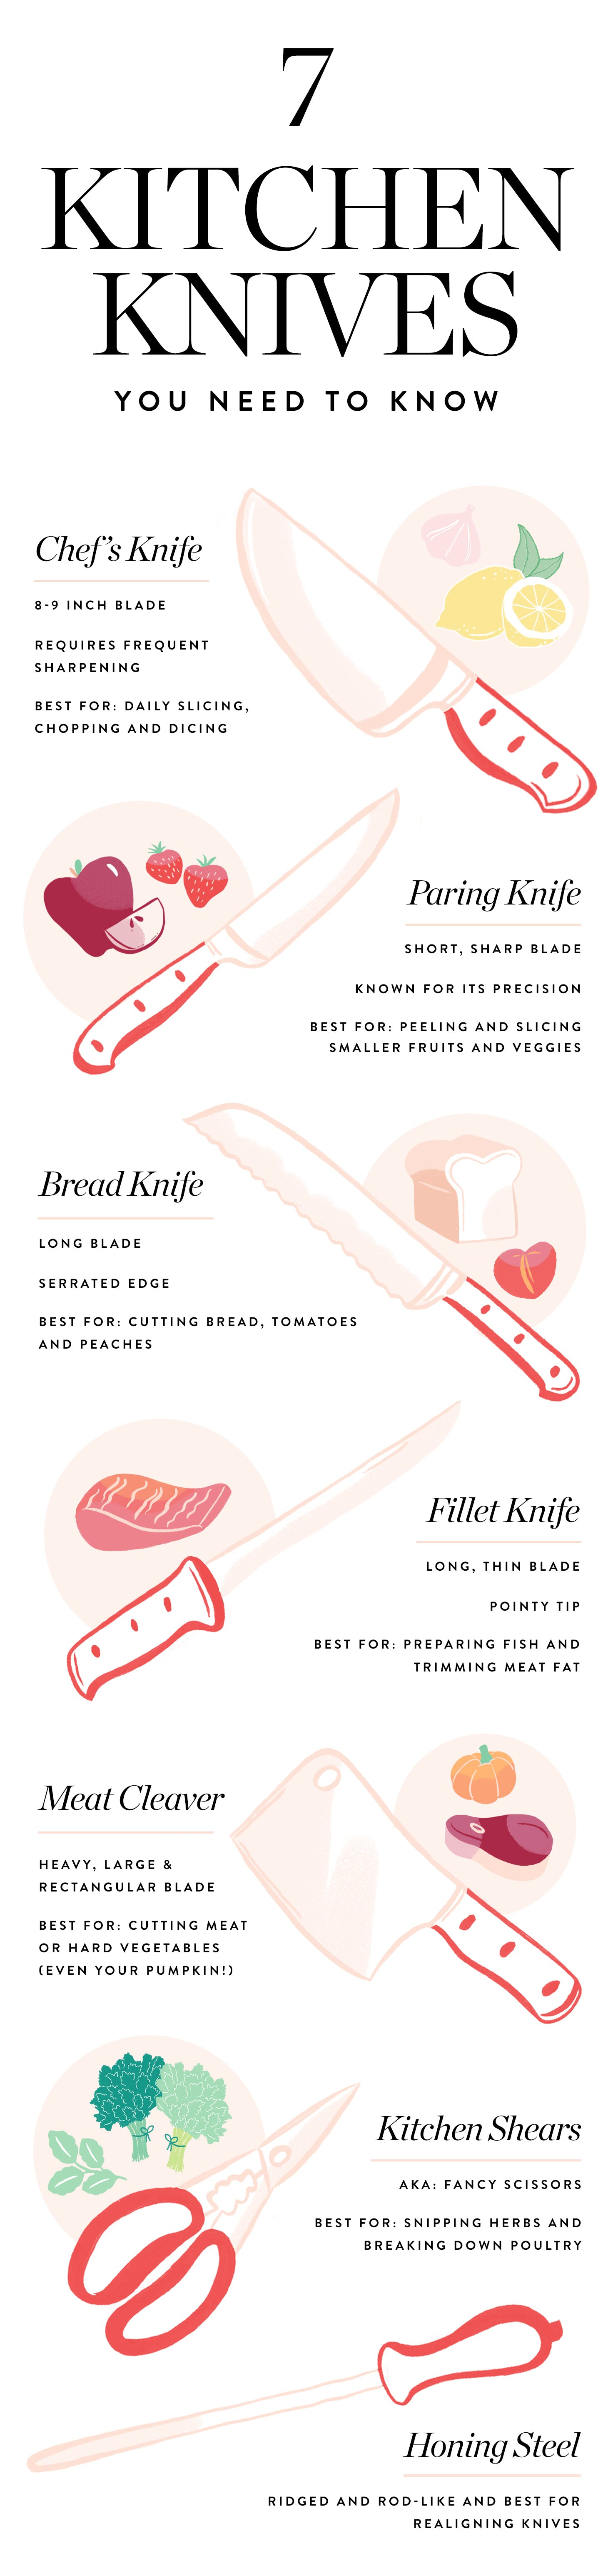 7 Kitchen Knives You Need to Know